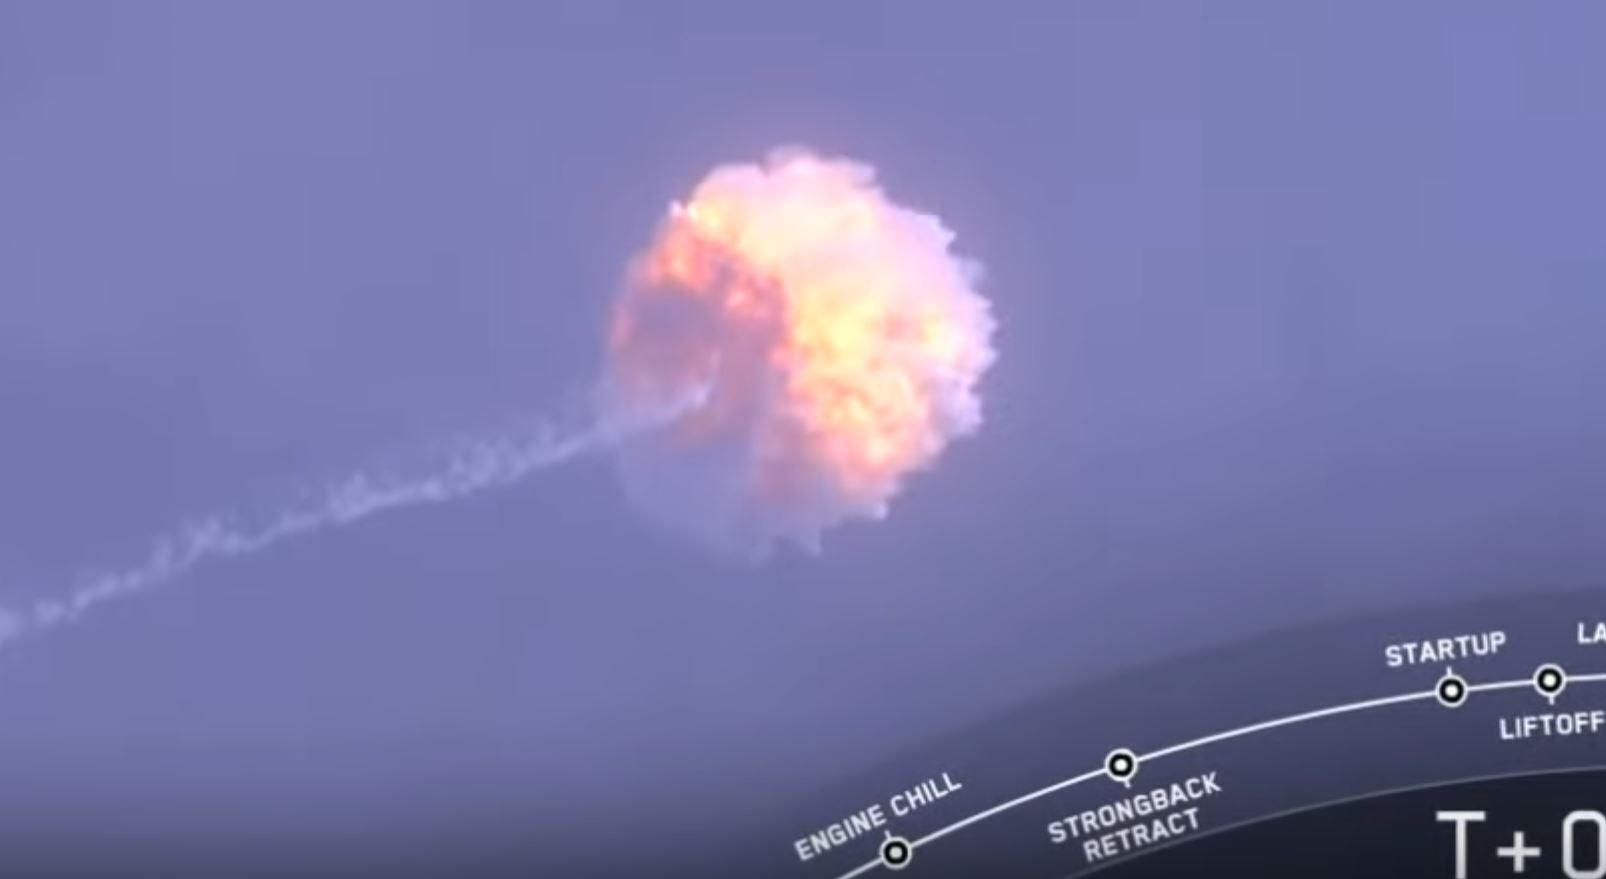 SpaceX Abort Mission - Intentional explosion of launcher - SpaceX video Screen Capture